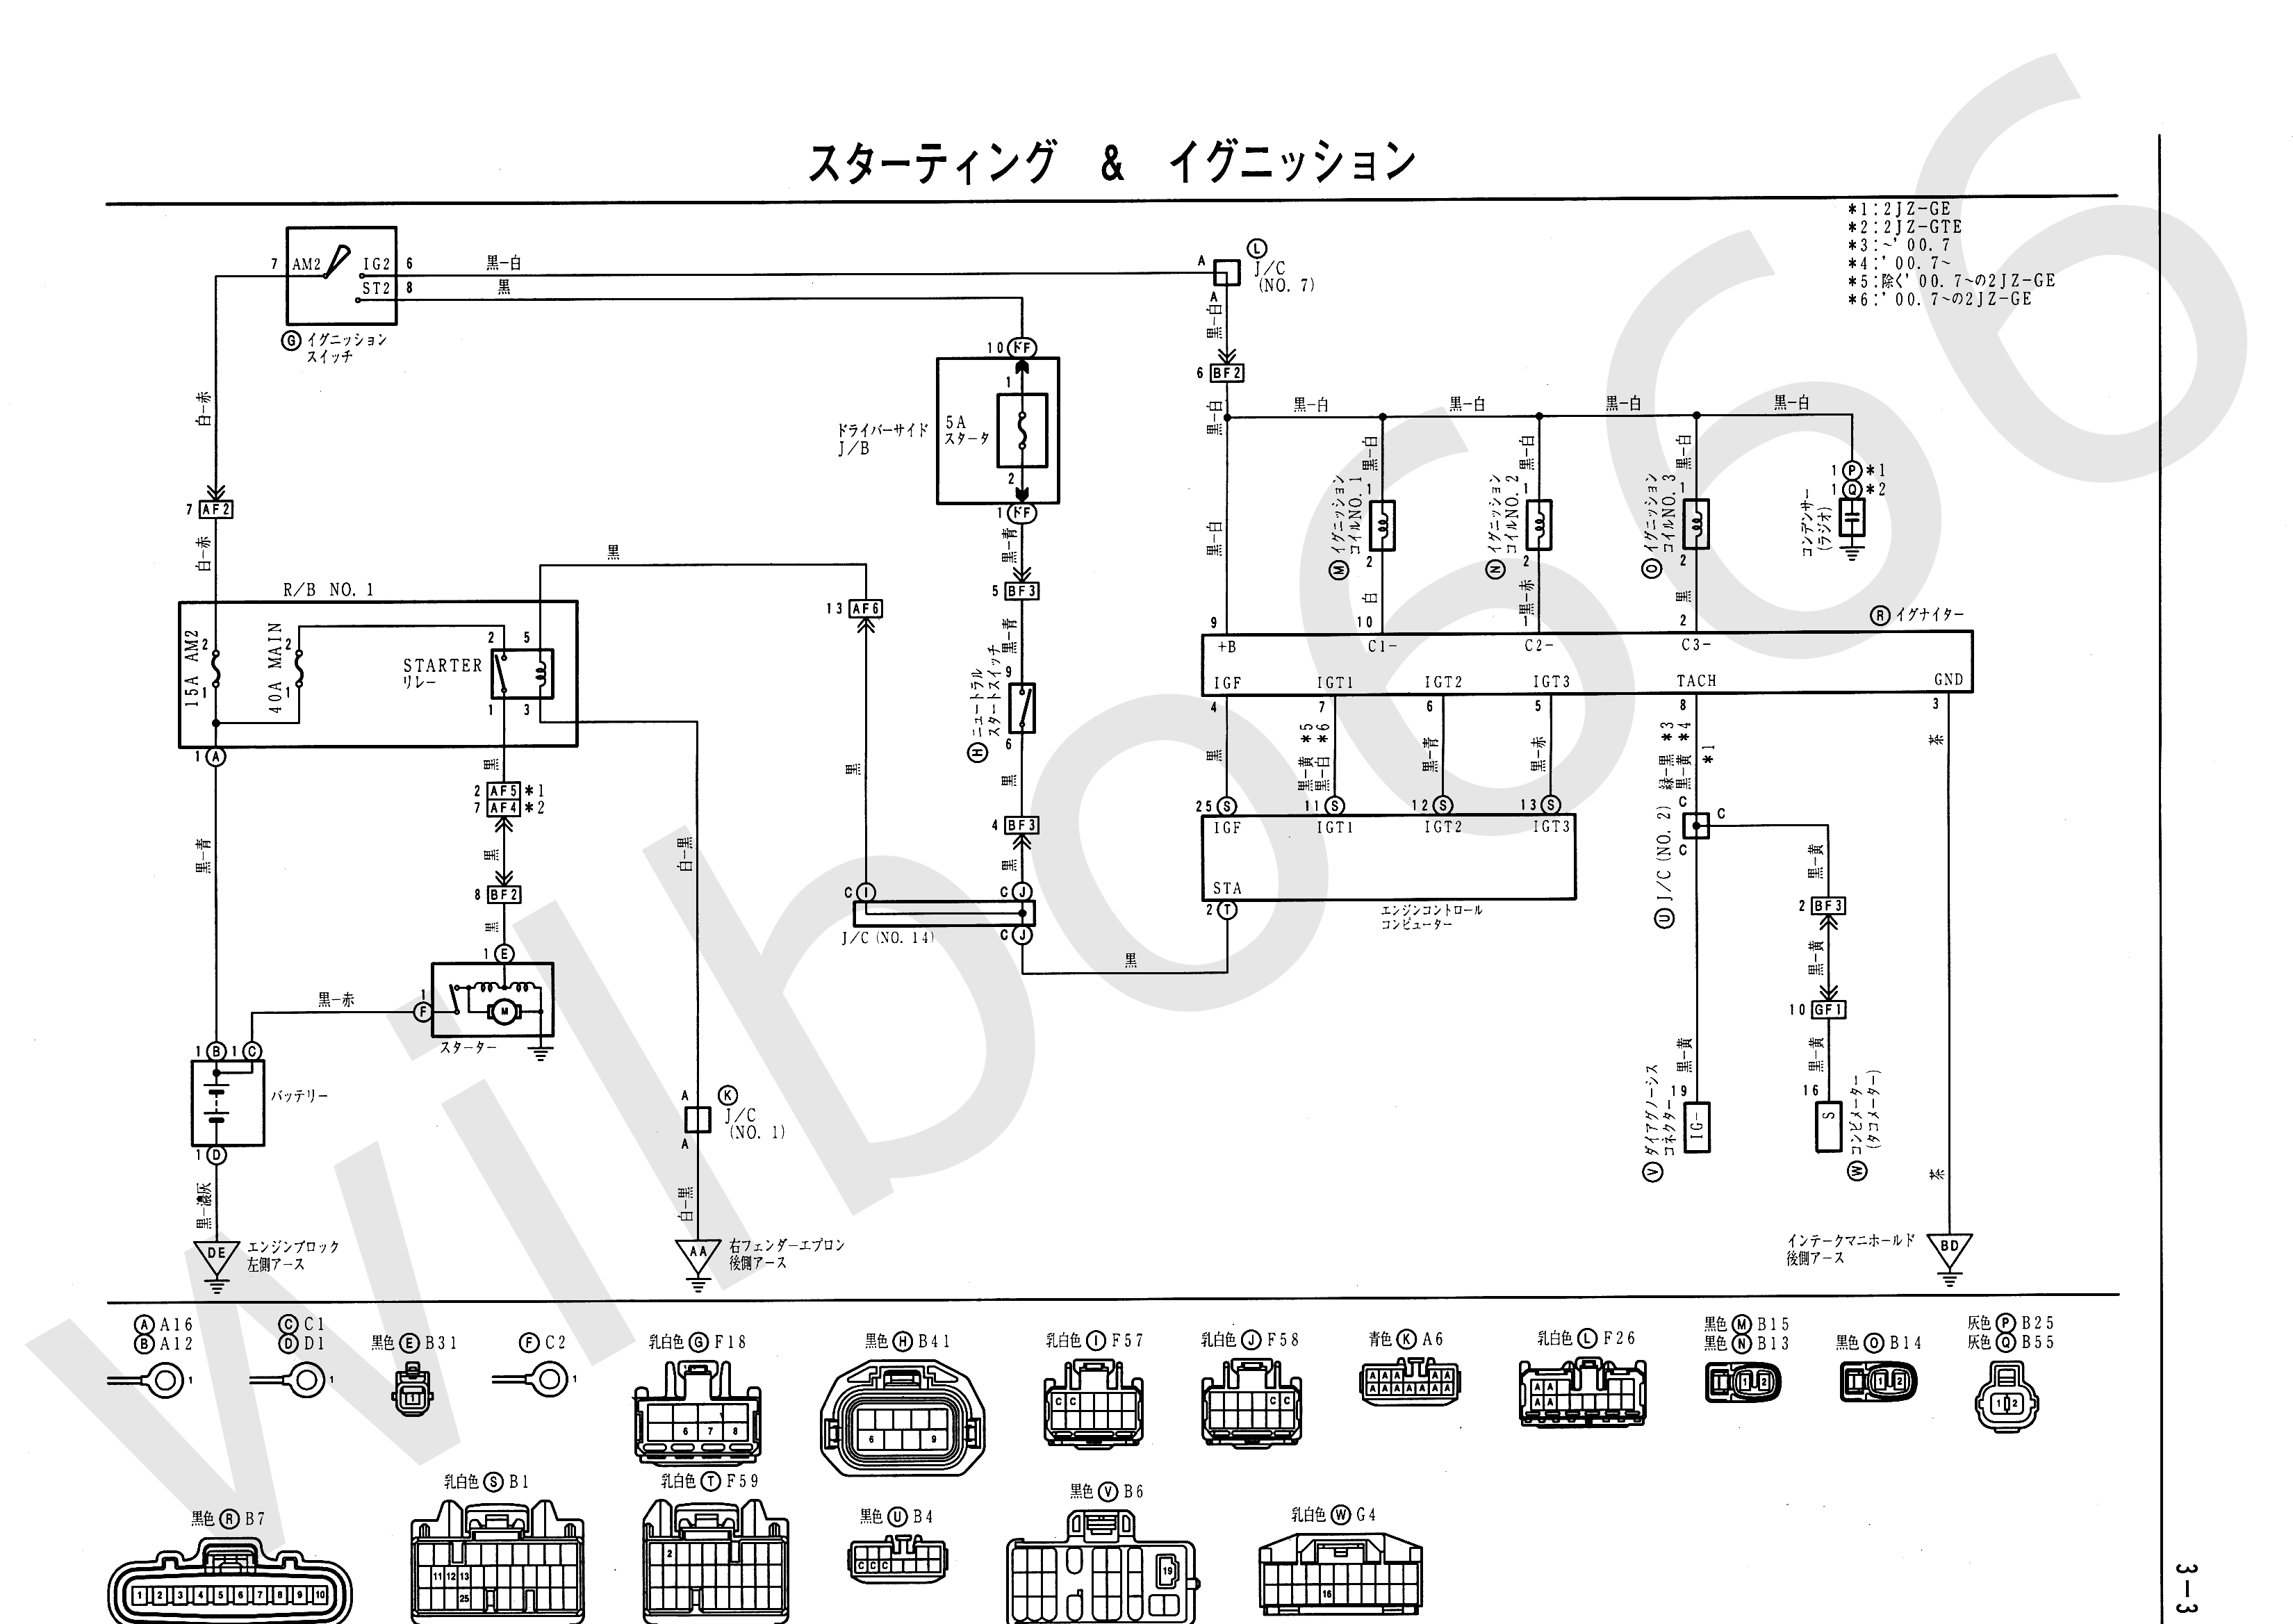 JZS161 Electrical Wiring Diagram 6748505 3 3 wilbo666 2jz gte vvti jzs161 aristo engine wiring  at reclaimingppi.co